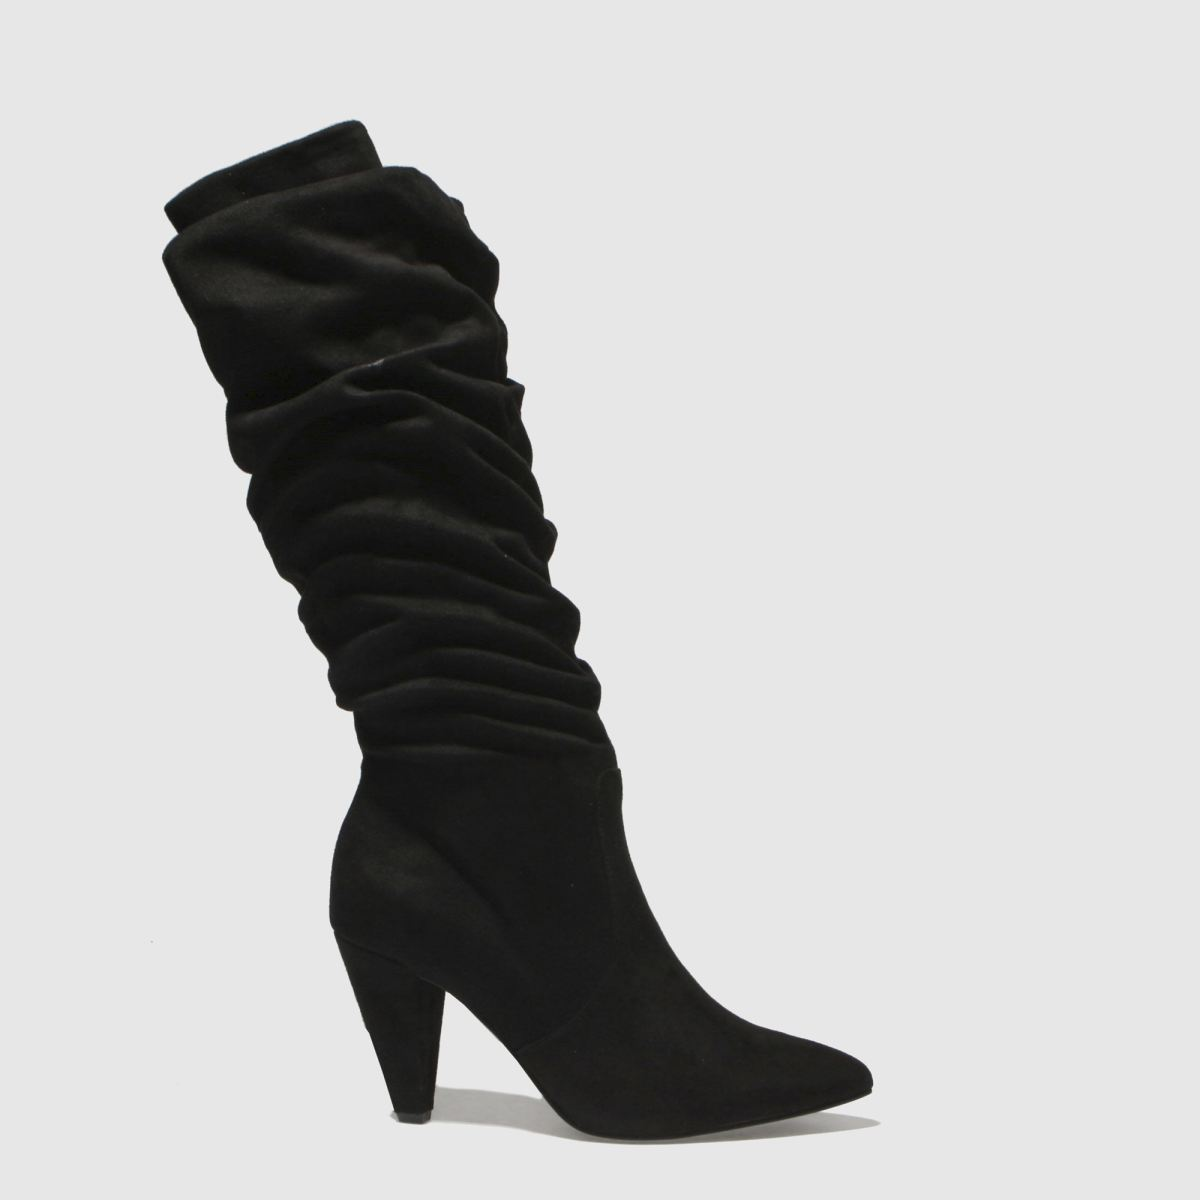 Schuh Black Sister Boots